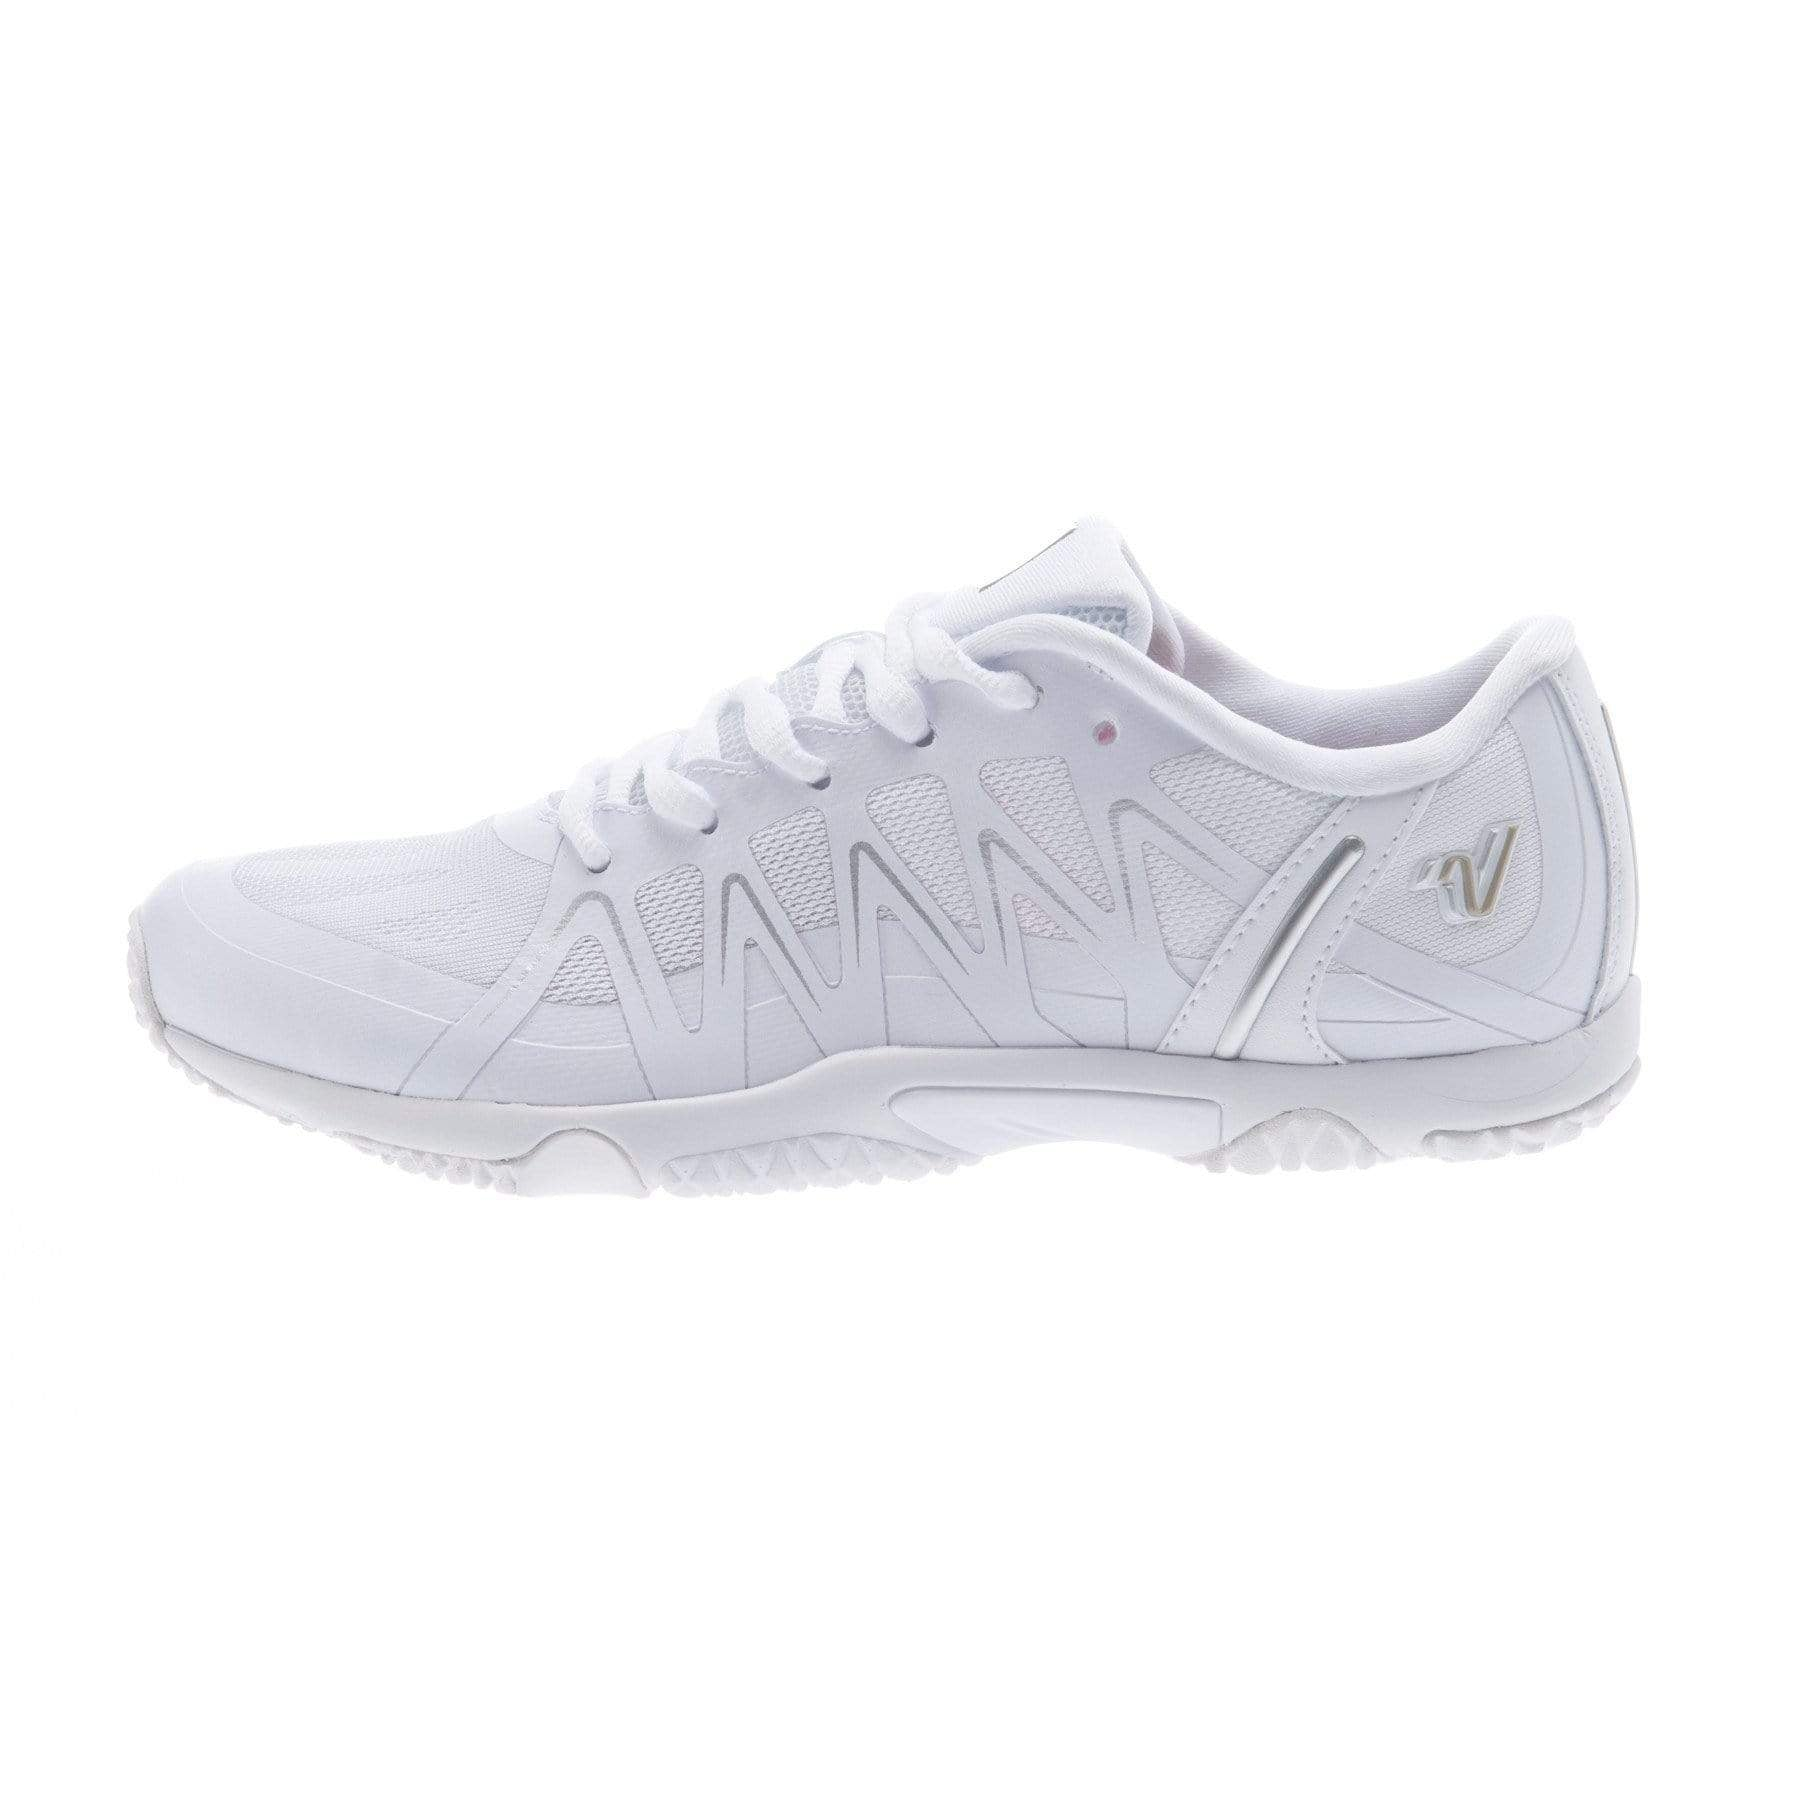 Sideline Cheer Shoes from the Cheer